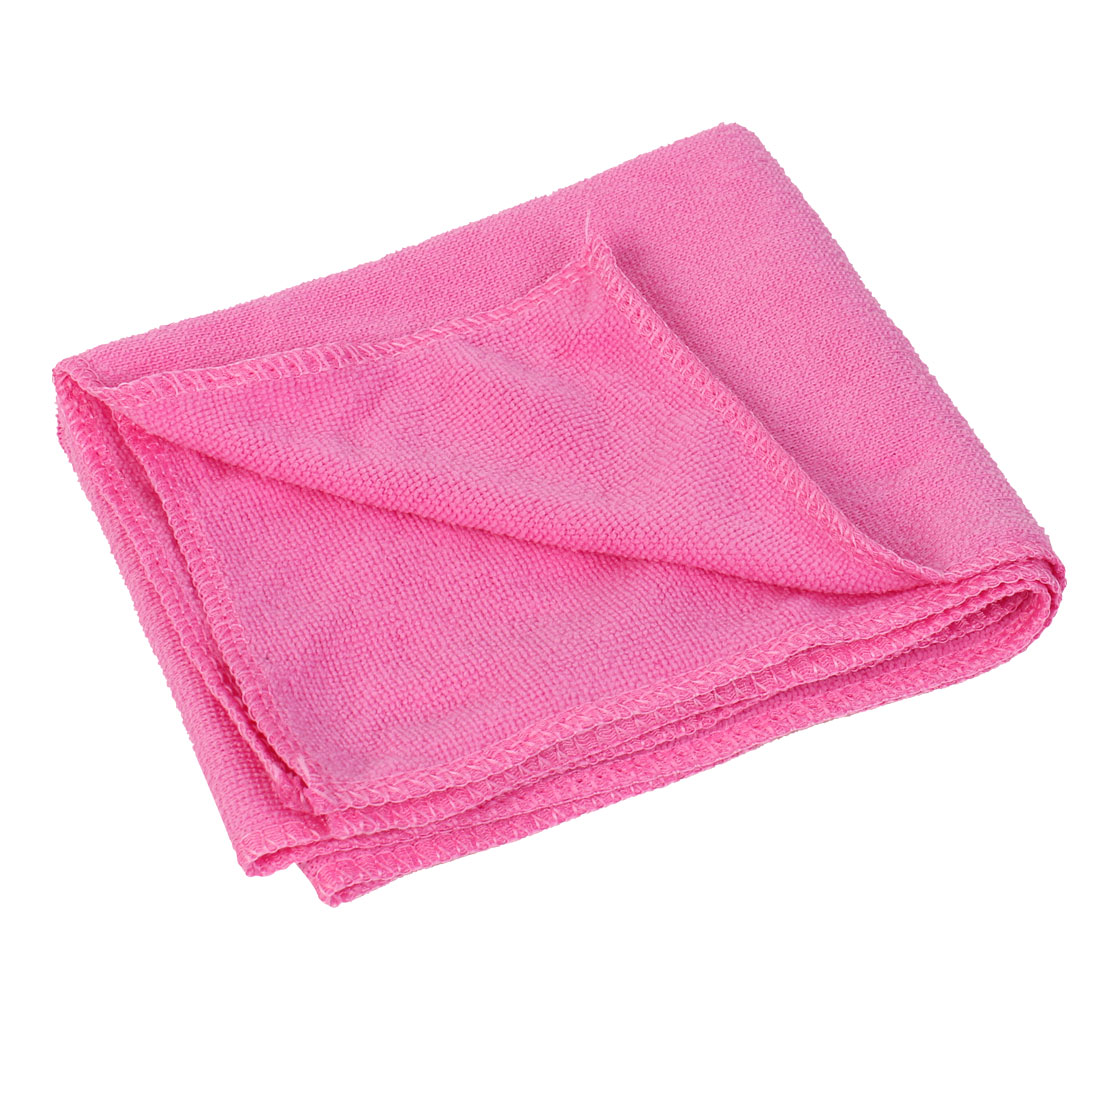 70cm x 30cm Fuchsia Microfiber Water Absorbent Hand Drying Face Bath Shower Towel Washcloth Cleaning Cloth